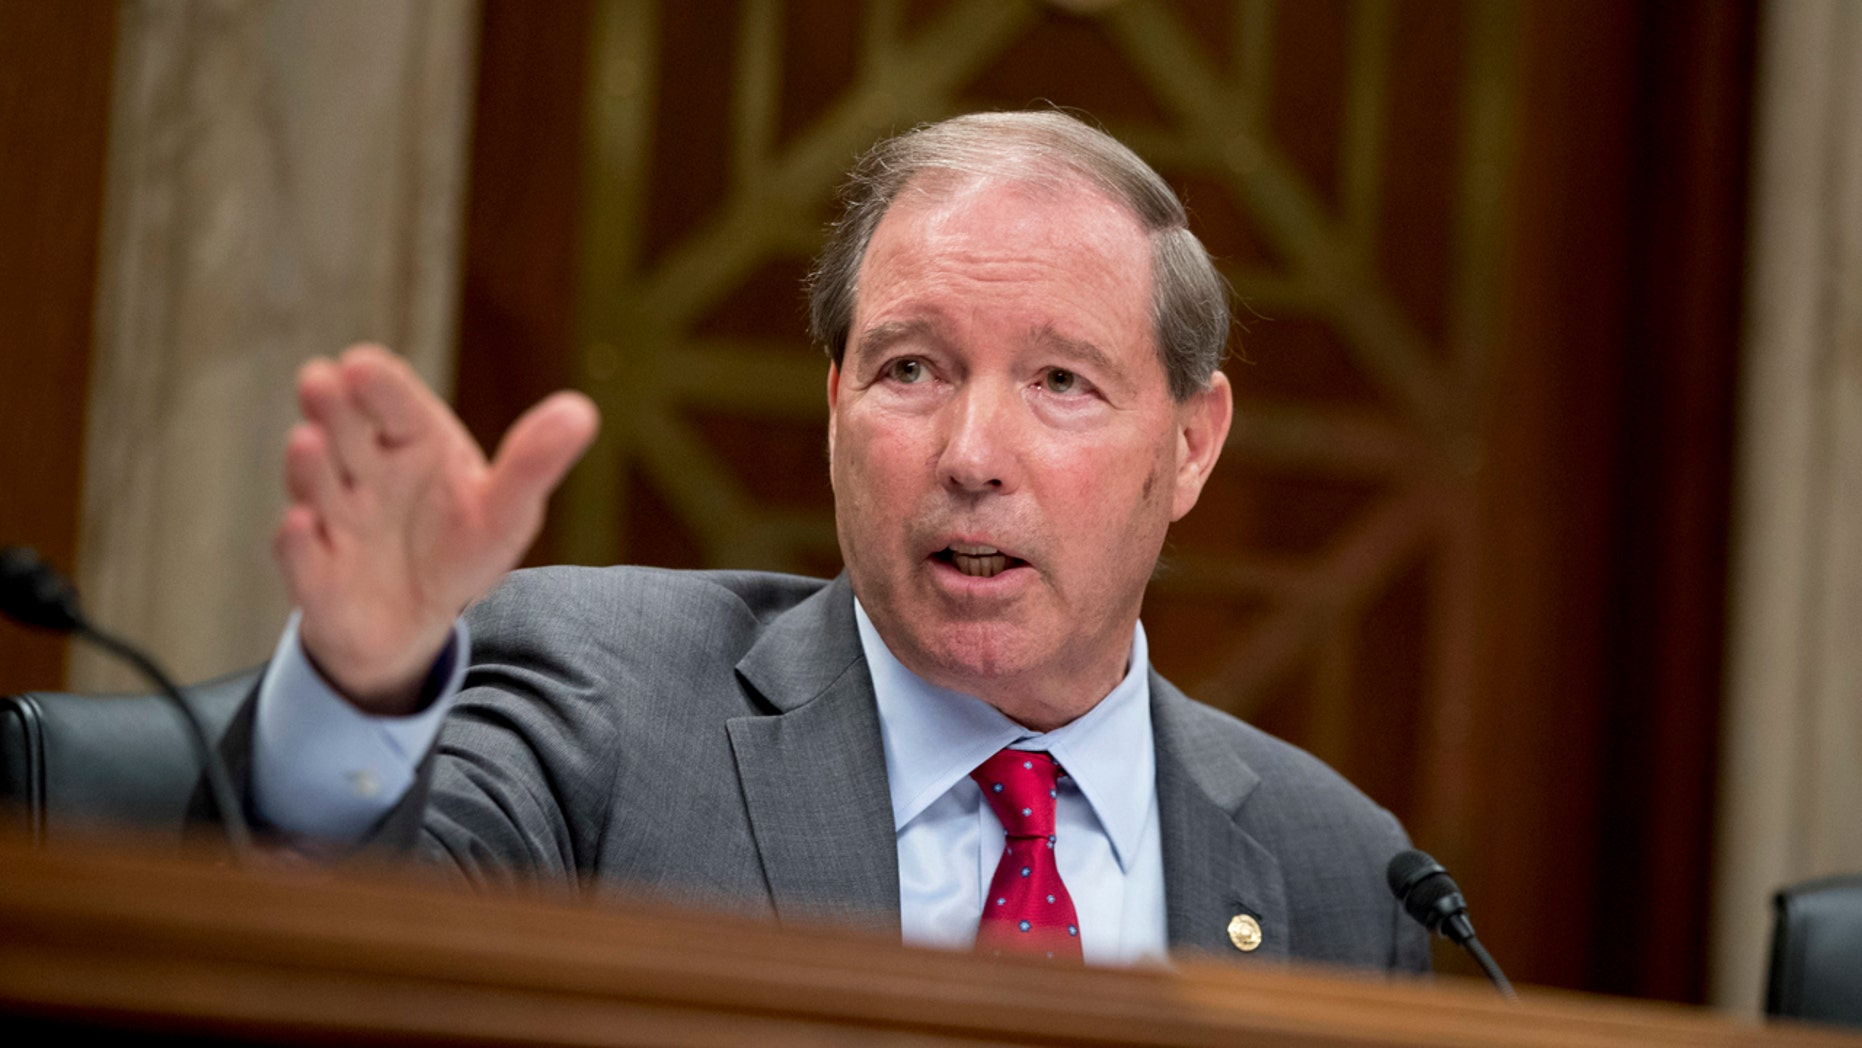 Udall says he will not seek reelection in 2020